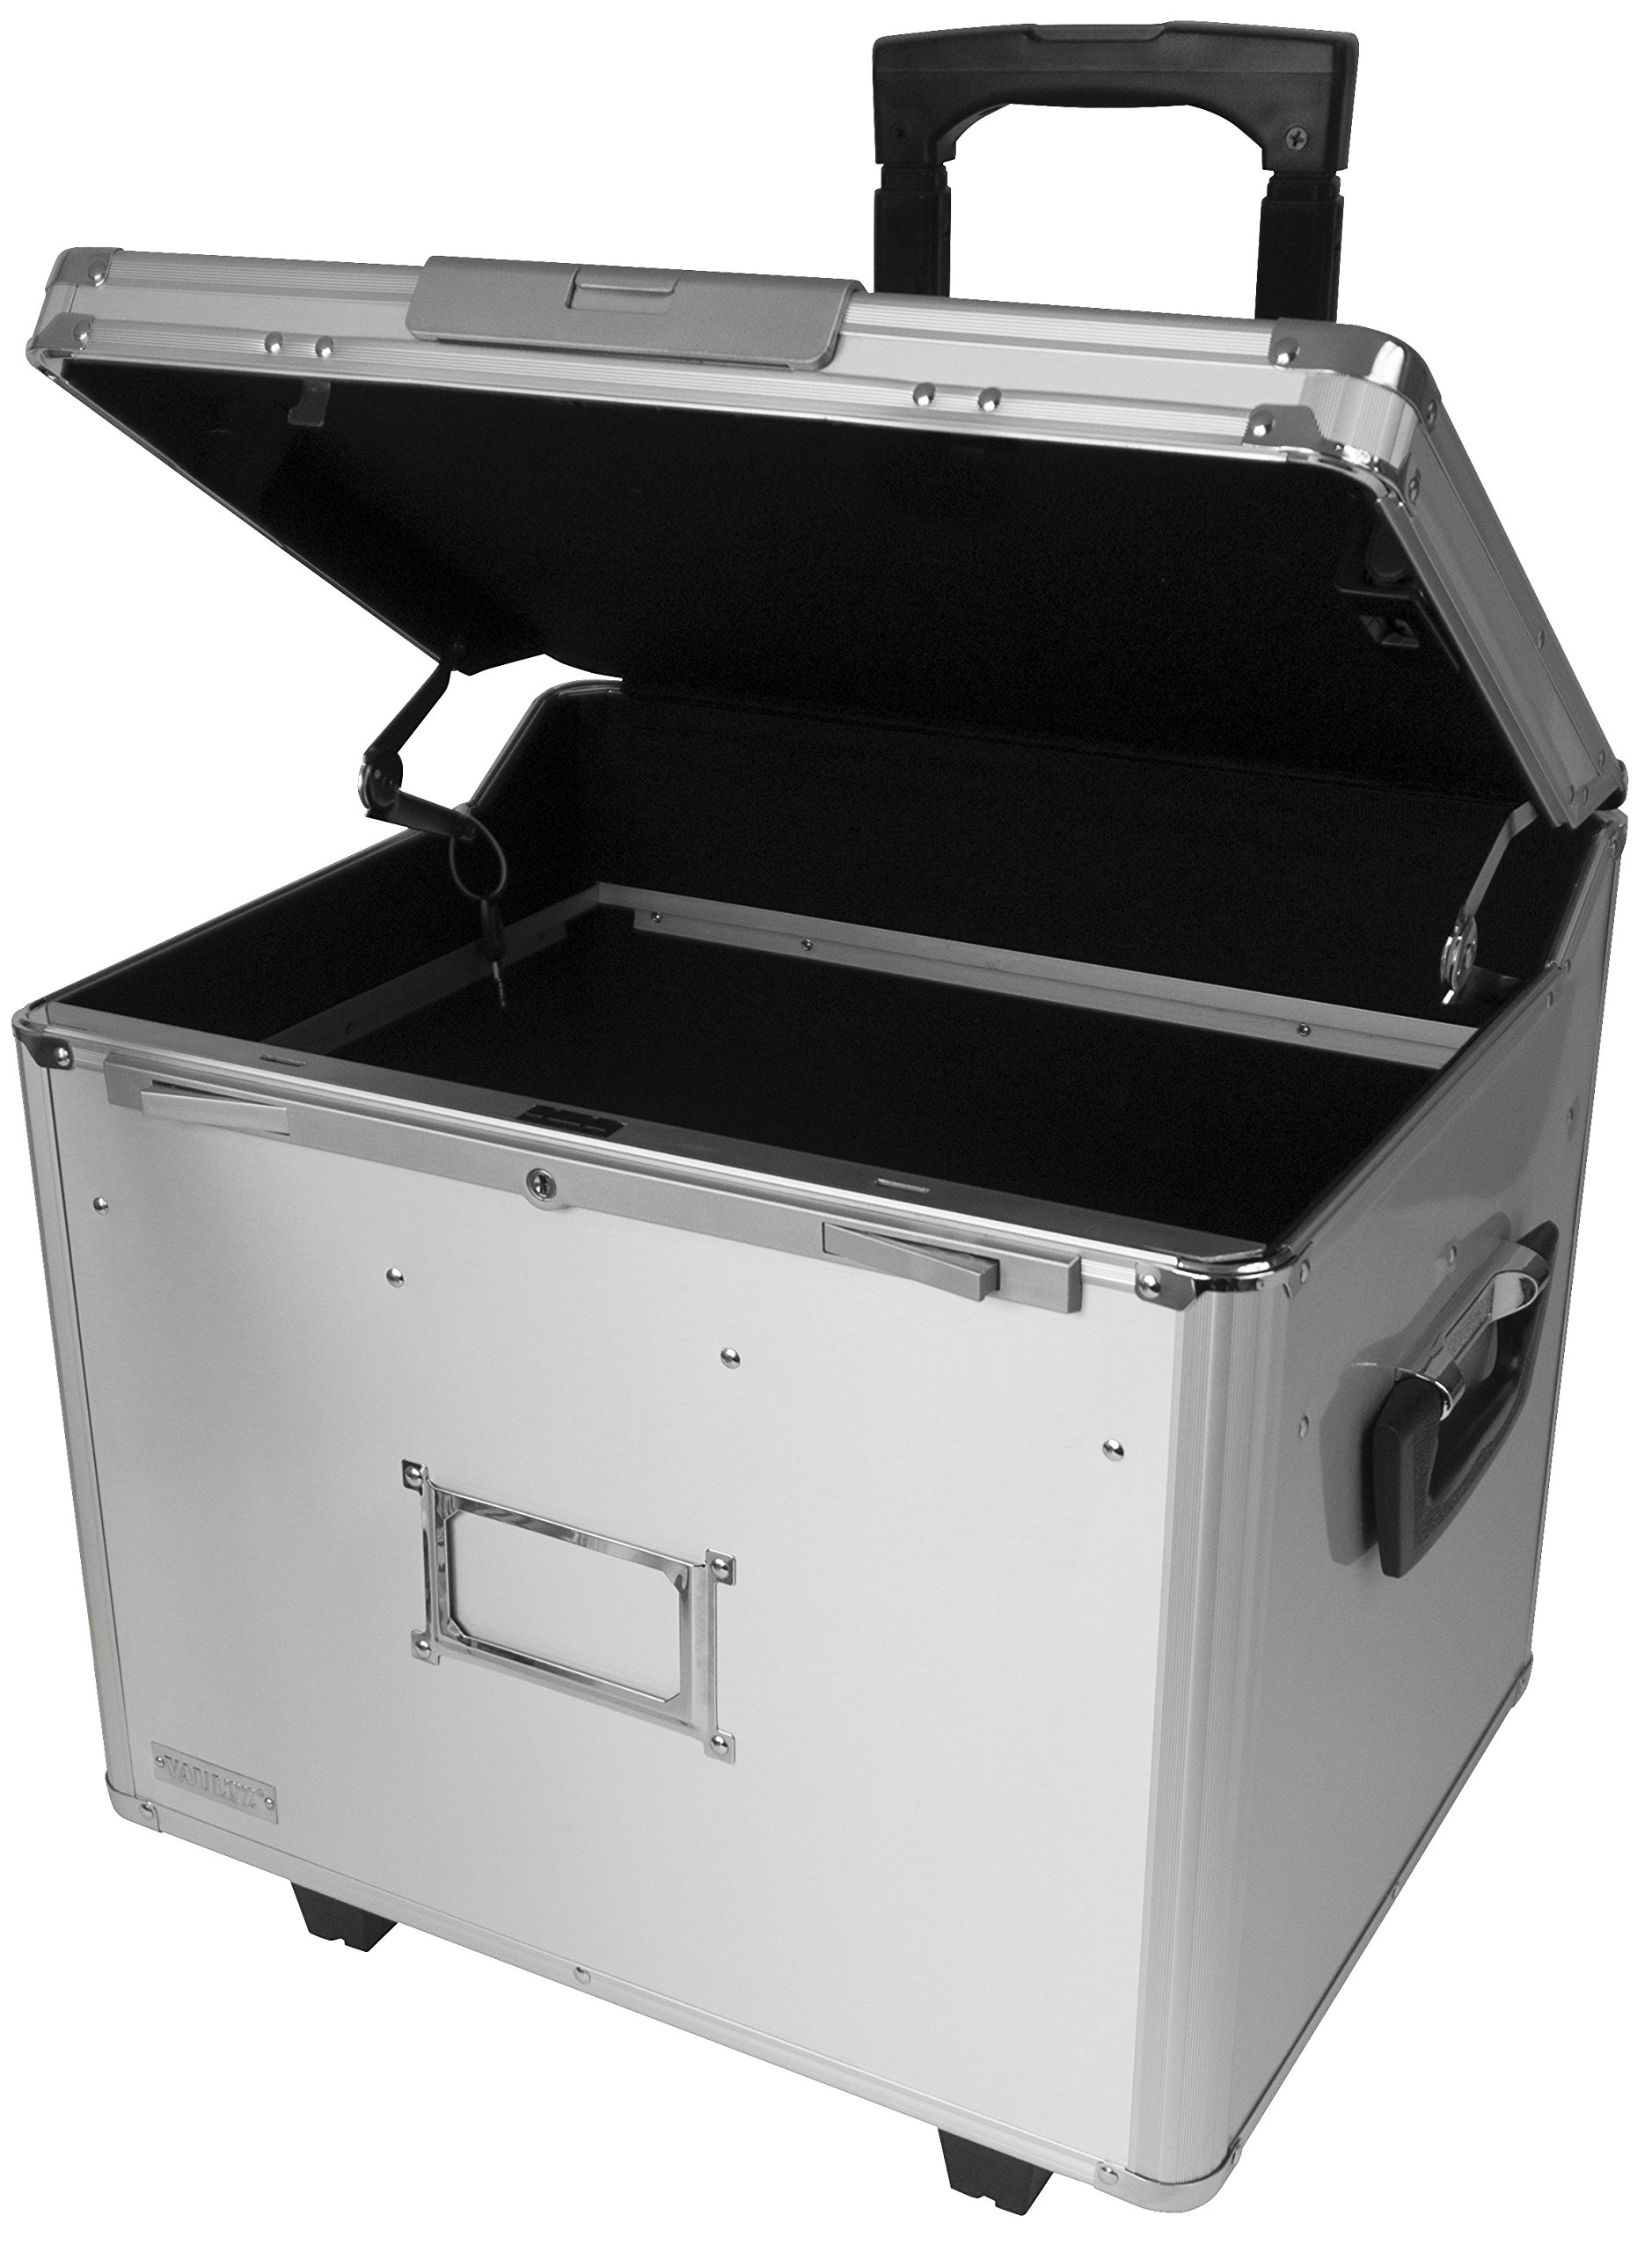 Vaultz Locking Letter/Legal Mobile File Chest with Electronic Lock, 9V Battery Required (Not Included), Silver Aluminum (VZ01193)